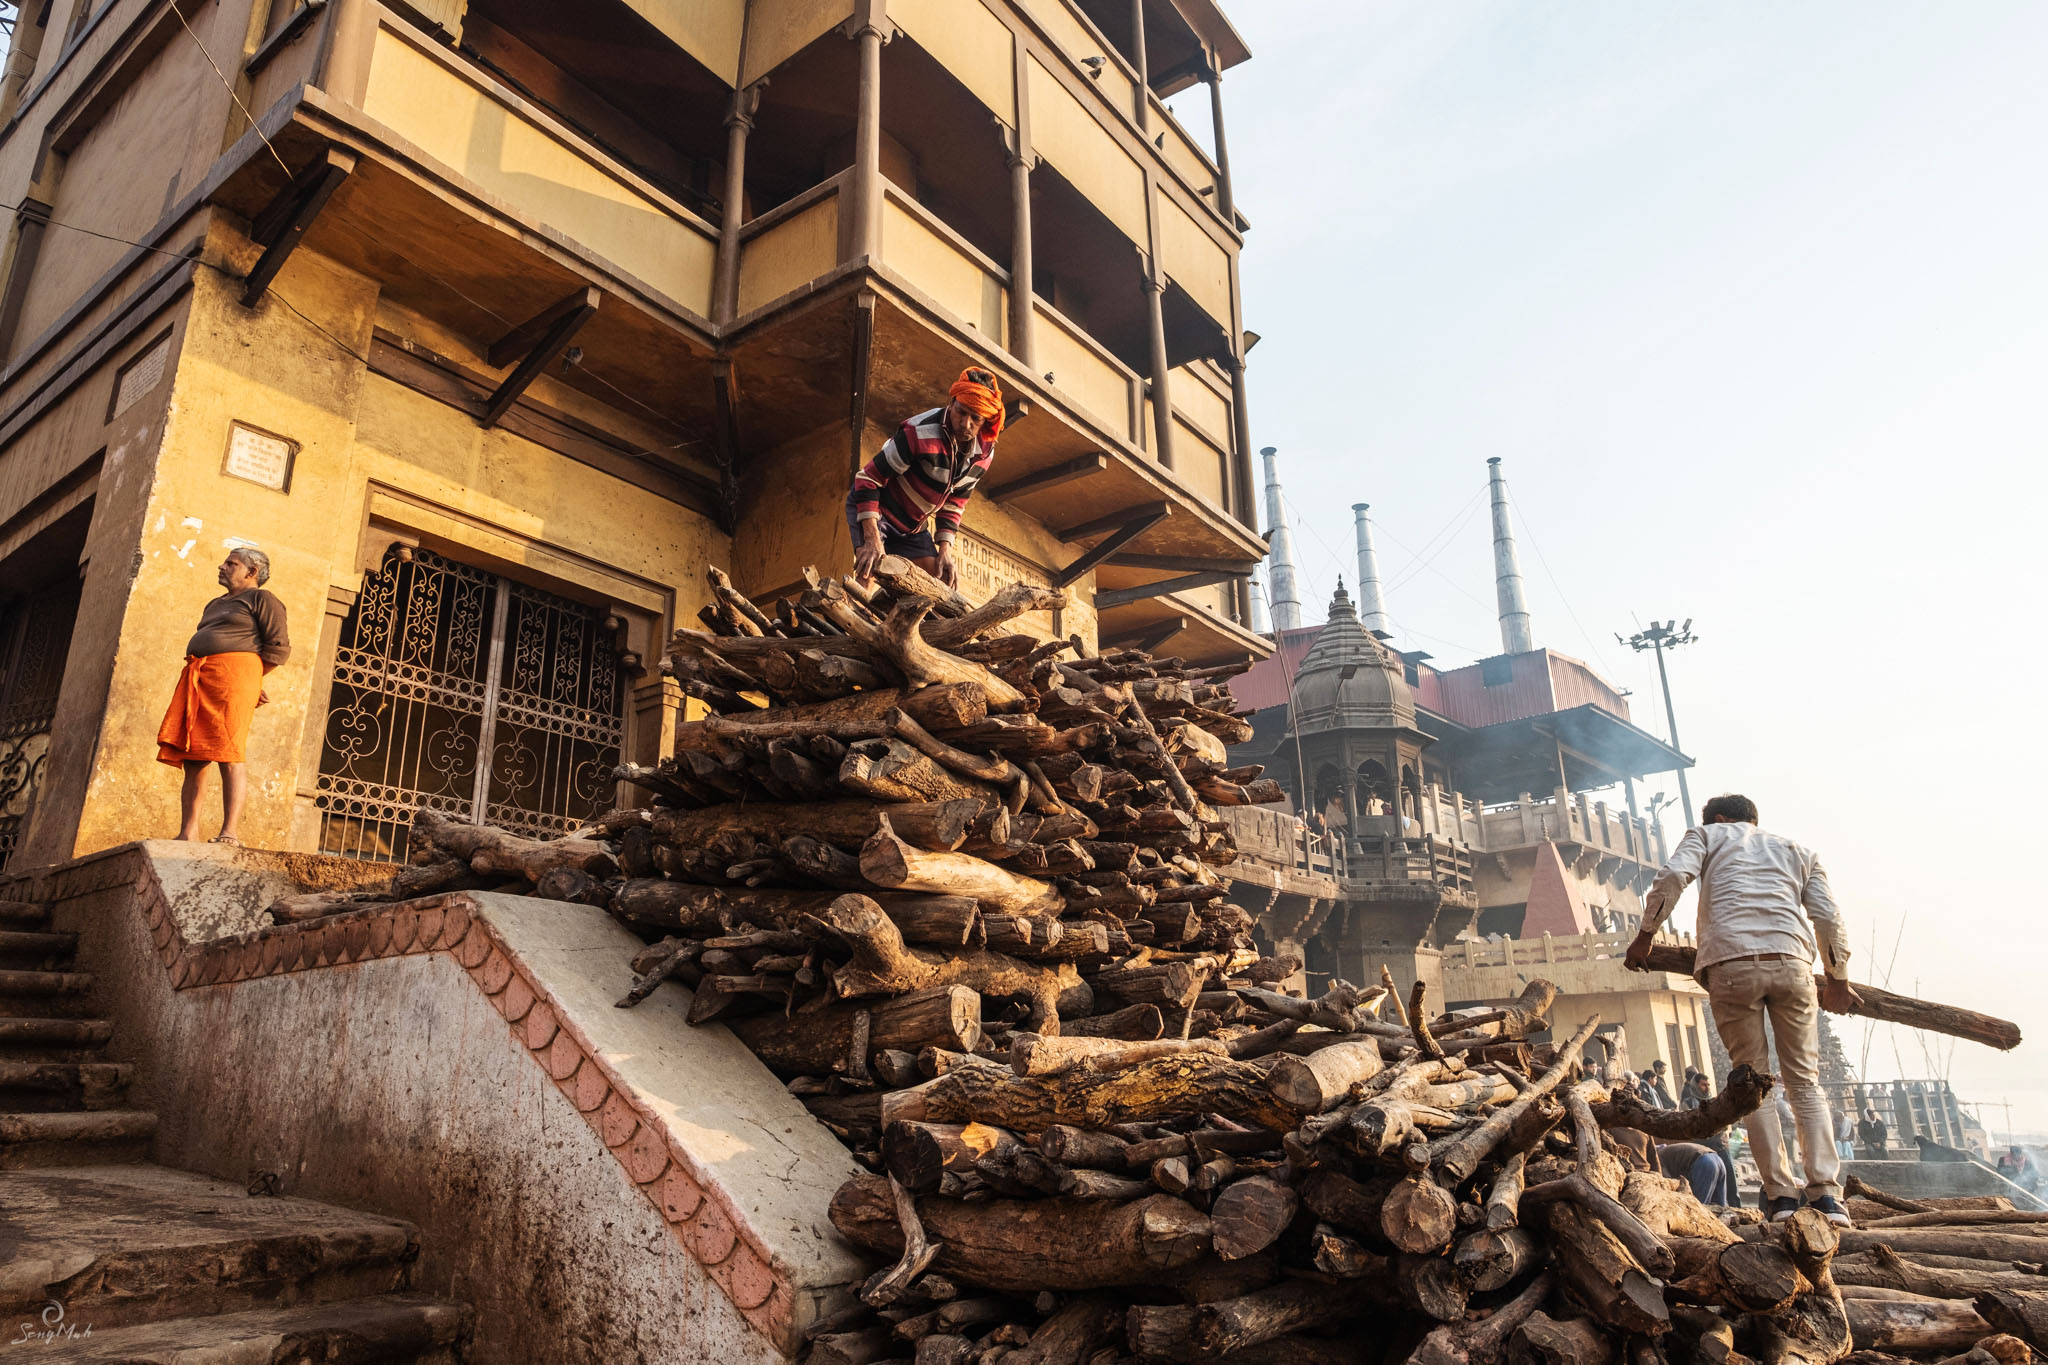 Piling cremation logs in Varanasi